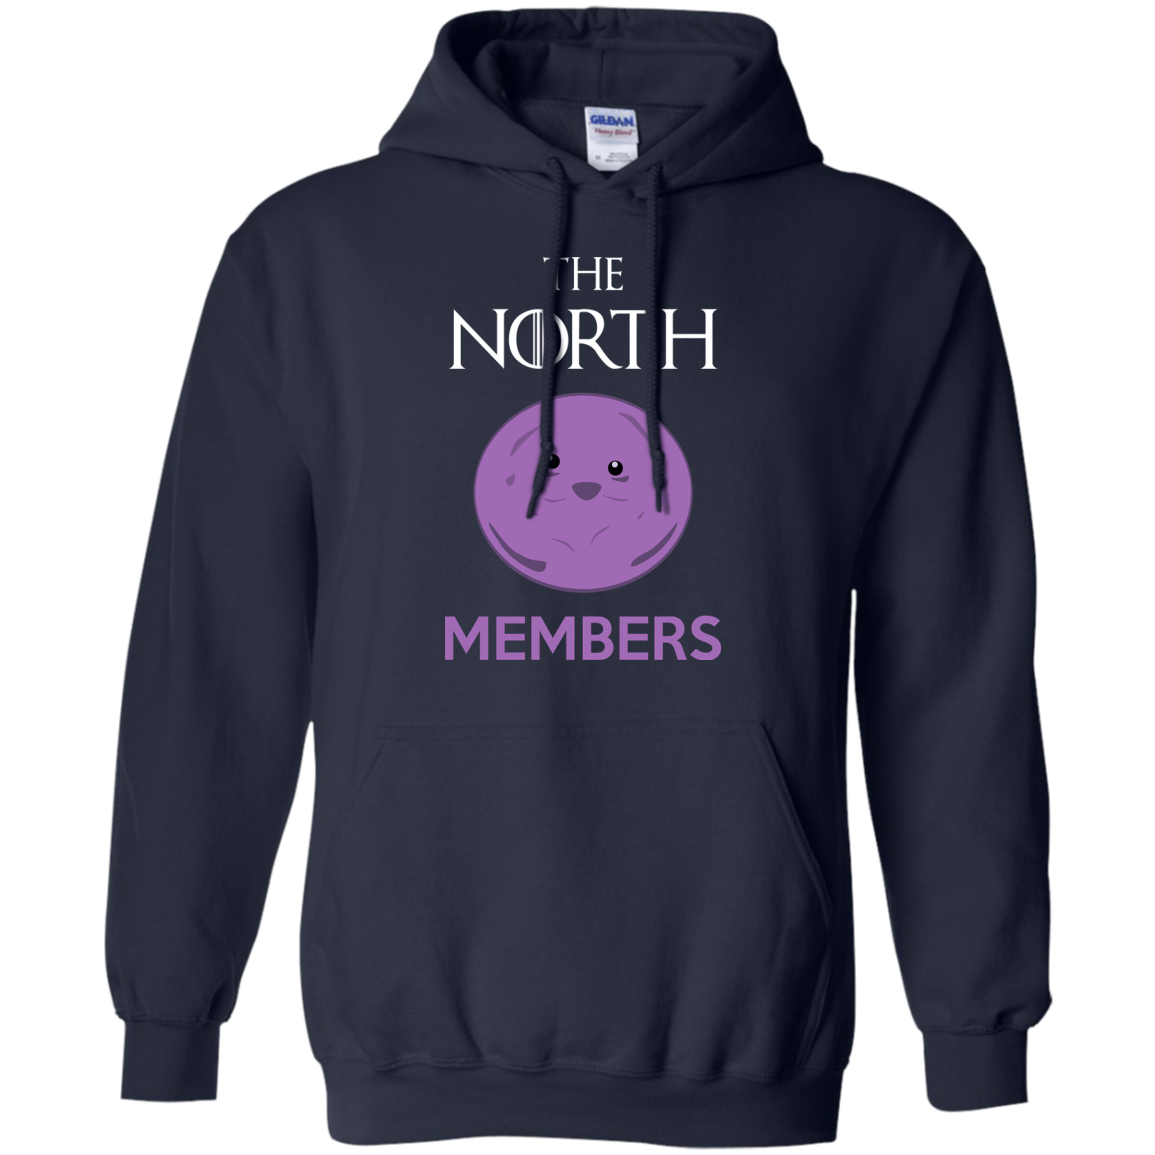 The north members t shirt, v neck, tank, hoodie